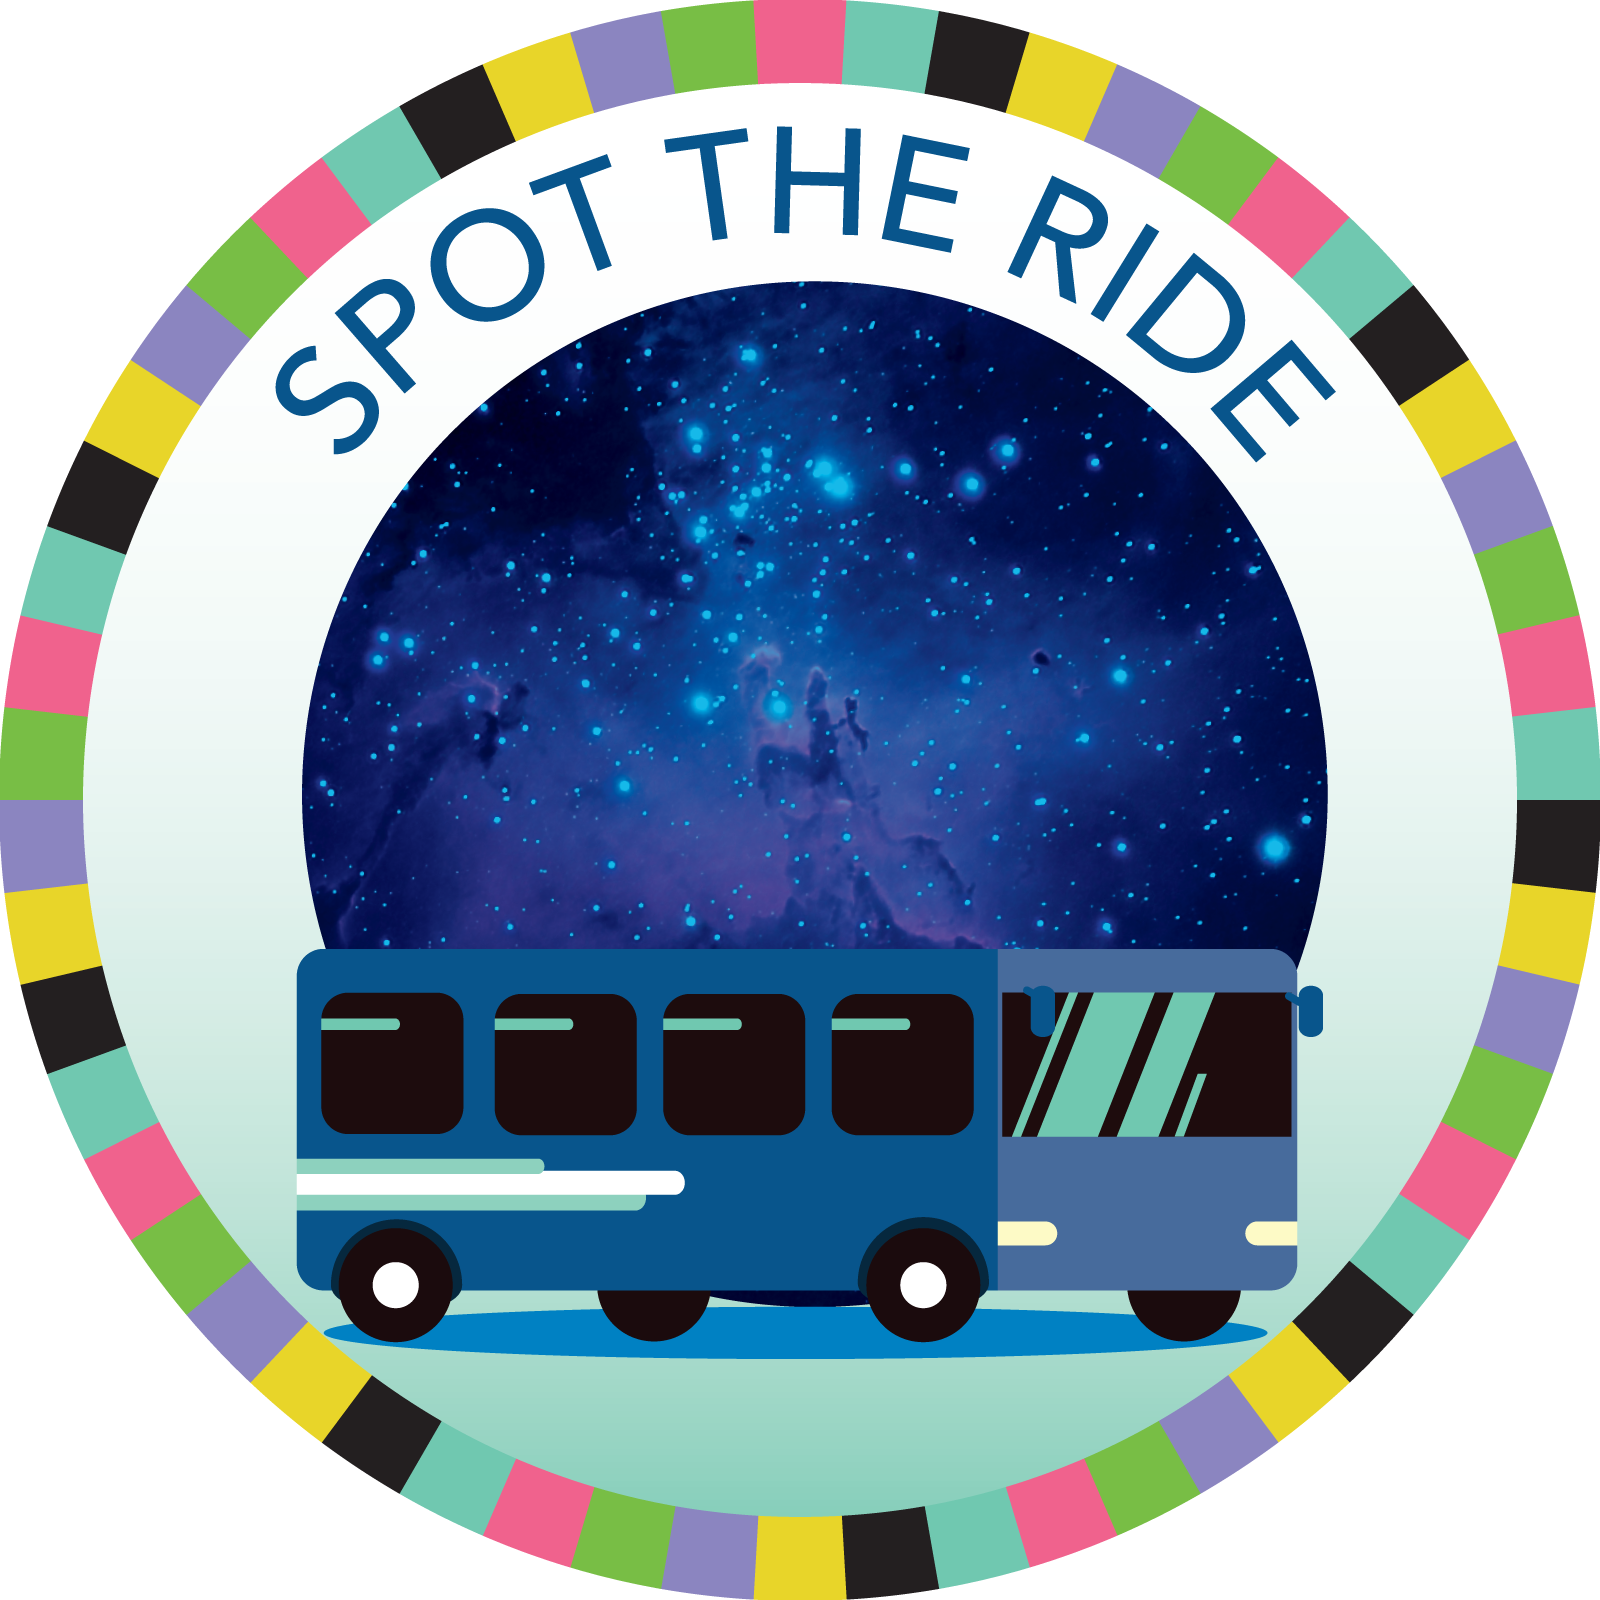 Spot The Ride badge image